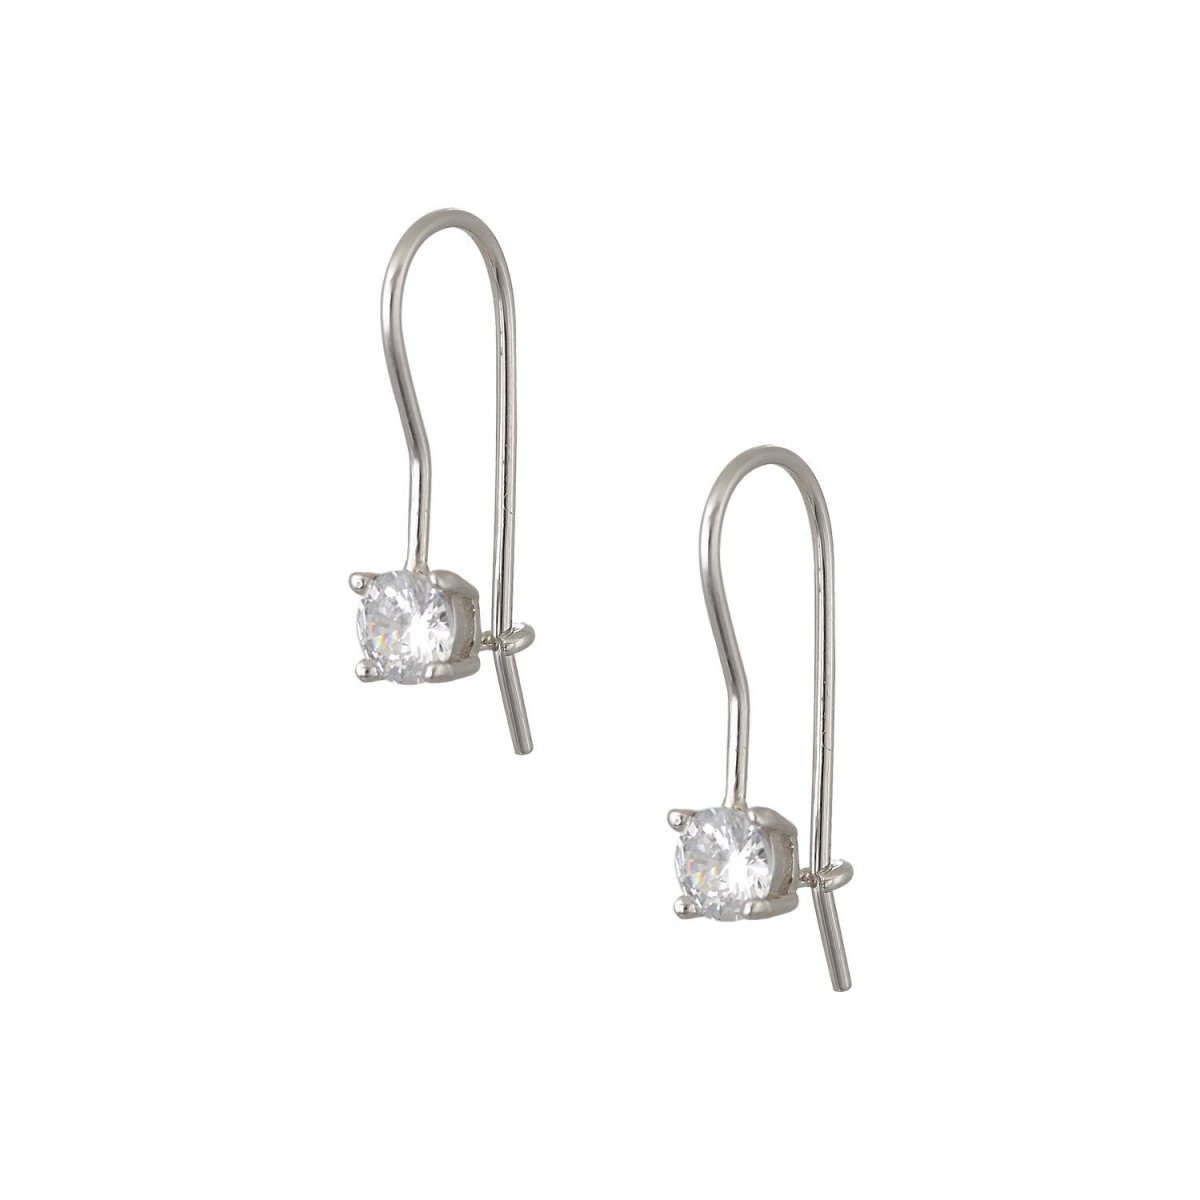 Pendant Earrings ER74410 With Silver and Zircon - Goldy Jewelry Store